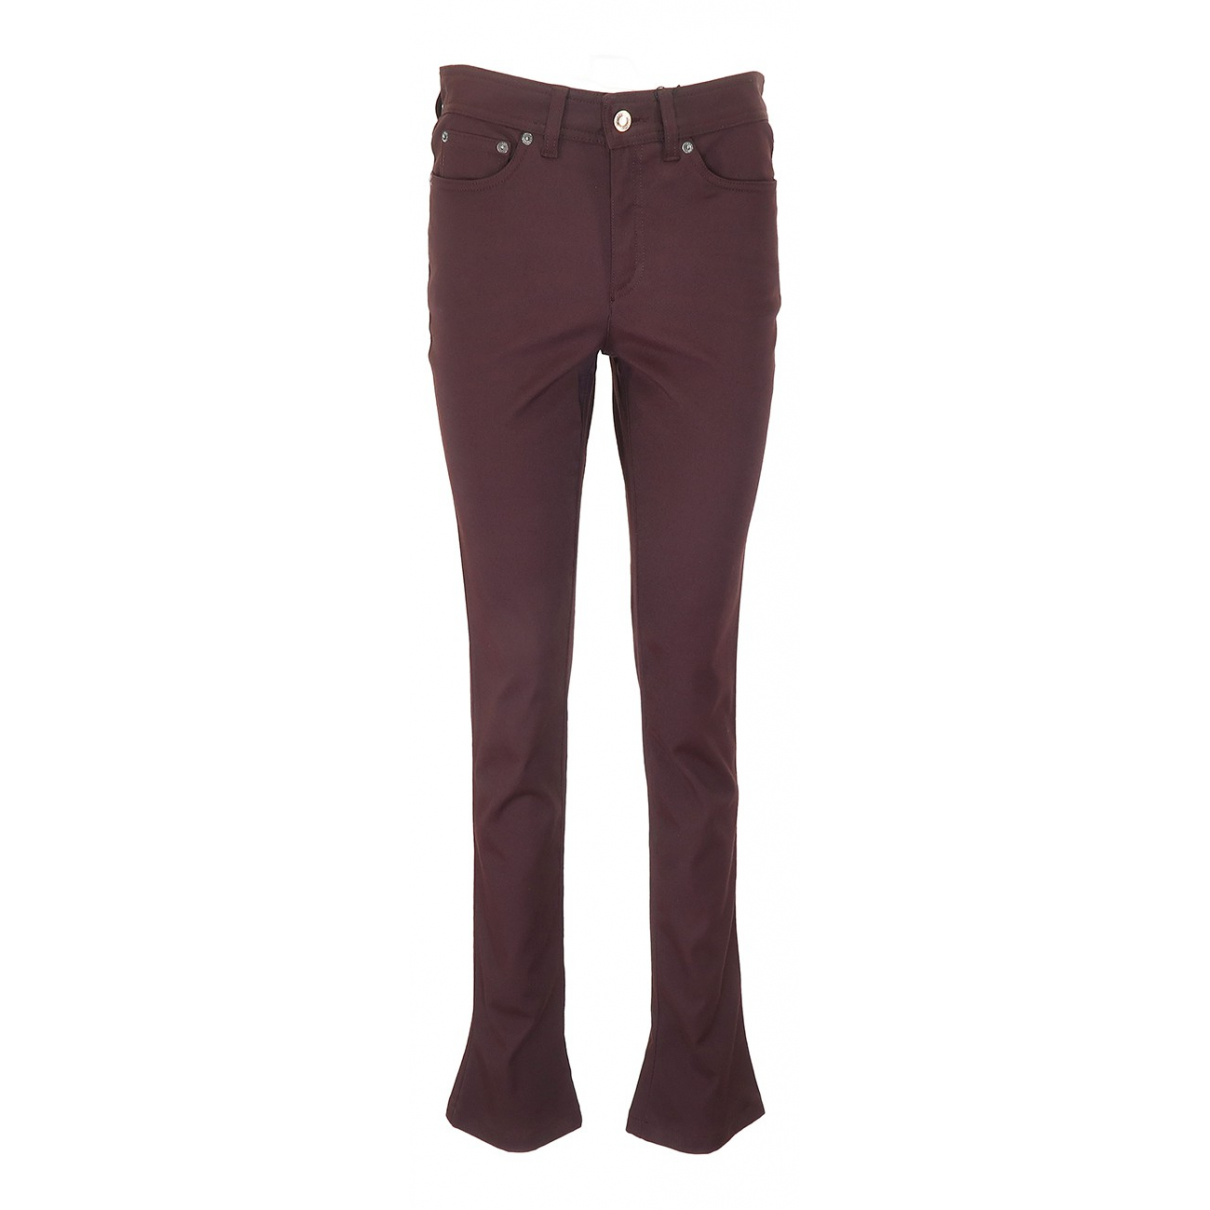 Gucci N Burgundy Cotton Trousers for Women 42 IT